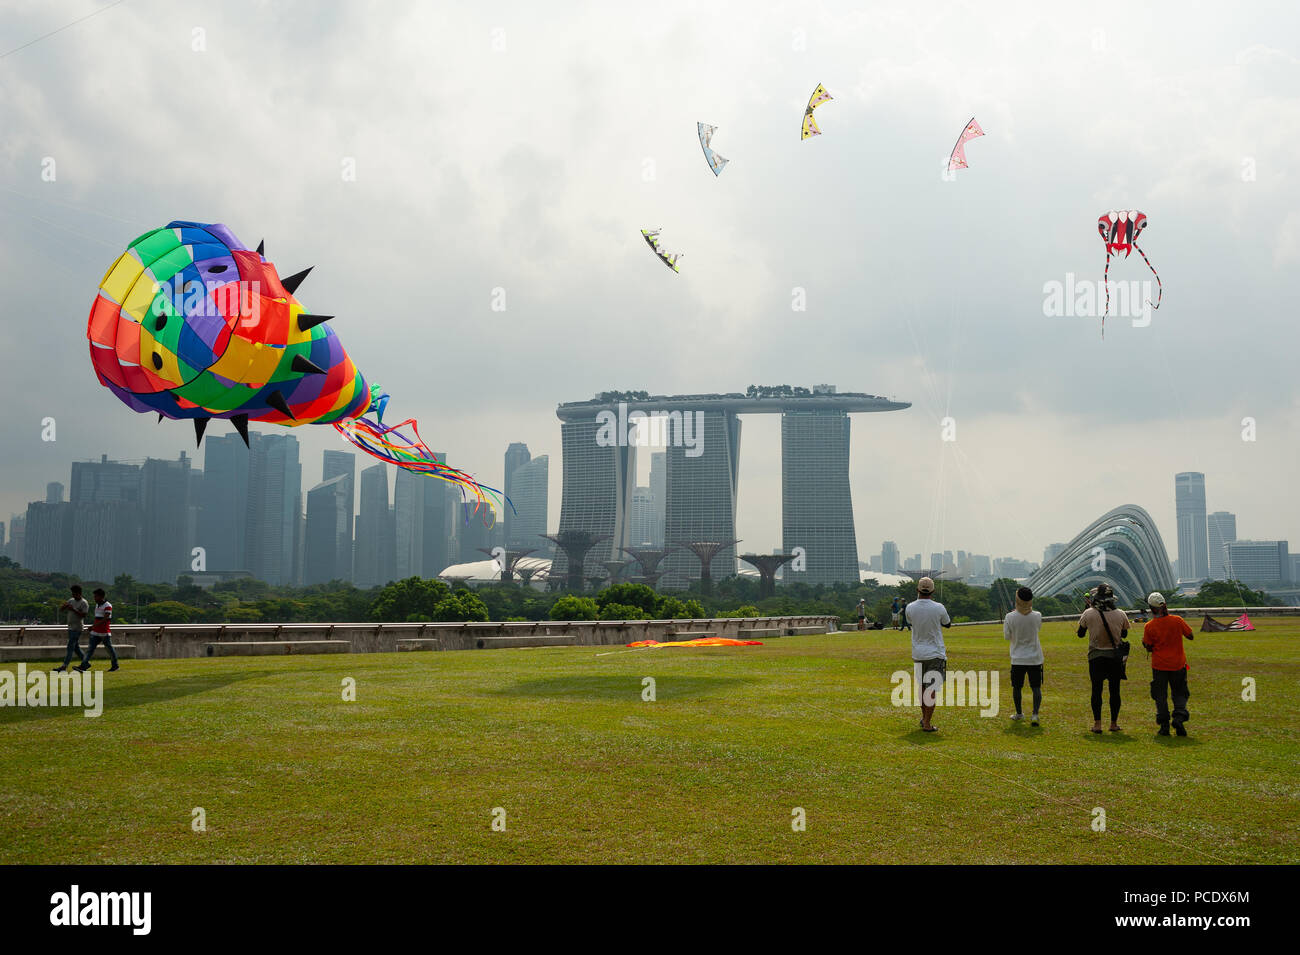 29.07.2018, Singapore, Republic of Singapore, Asia - People are seen flying kites on the Marina Barrage rooftop garden. - Stock Image